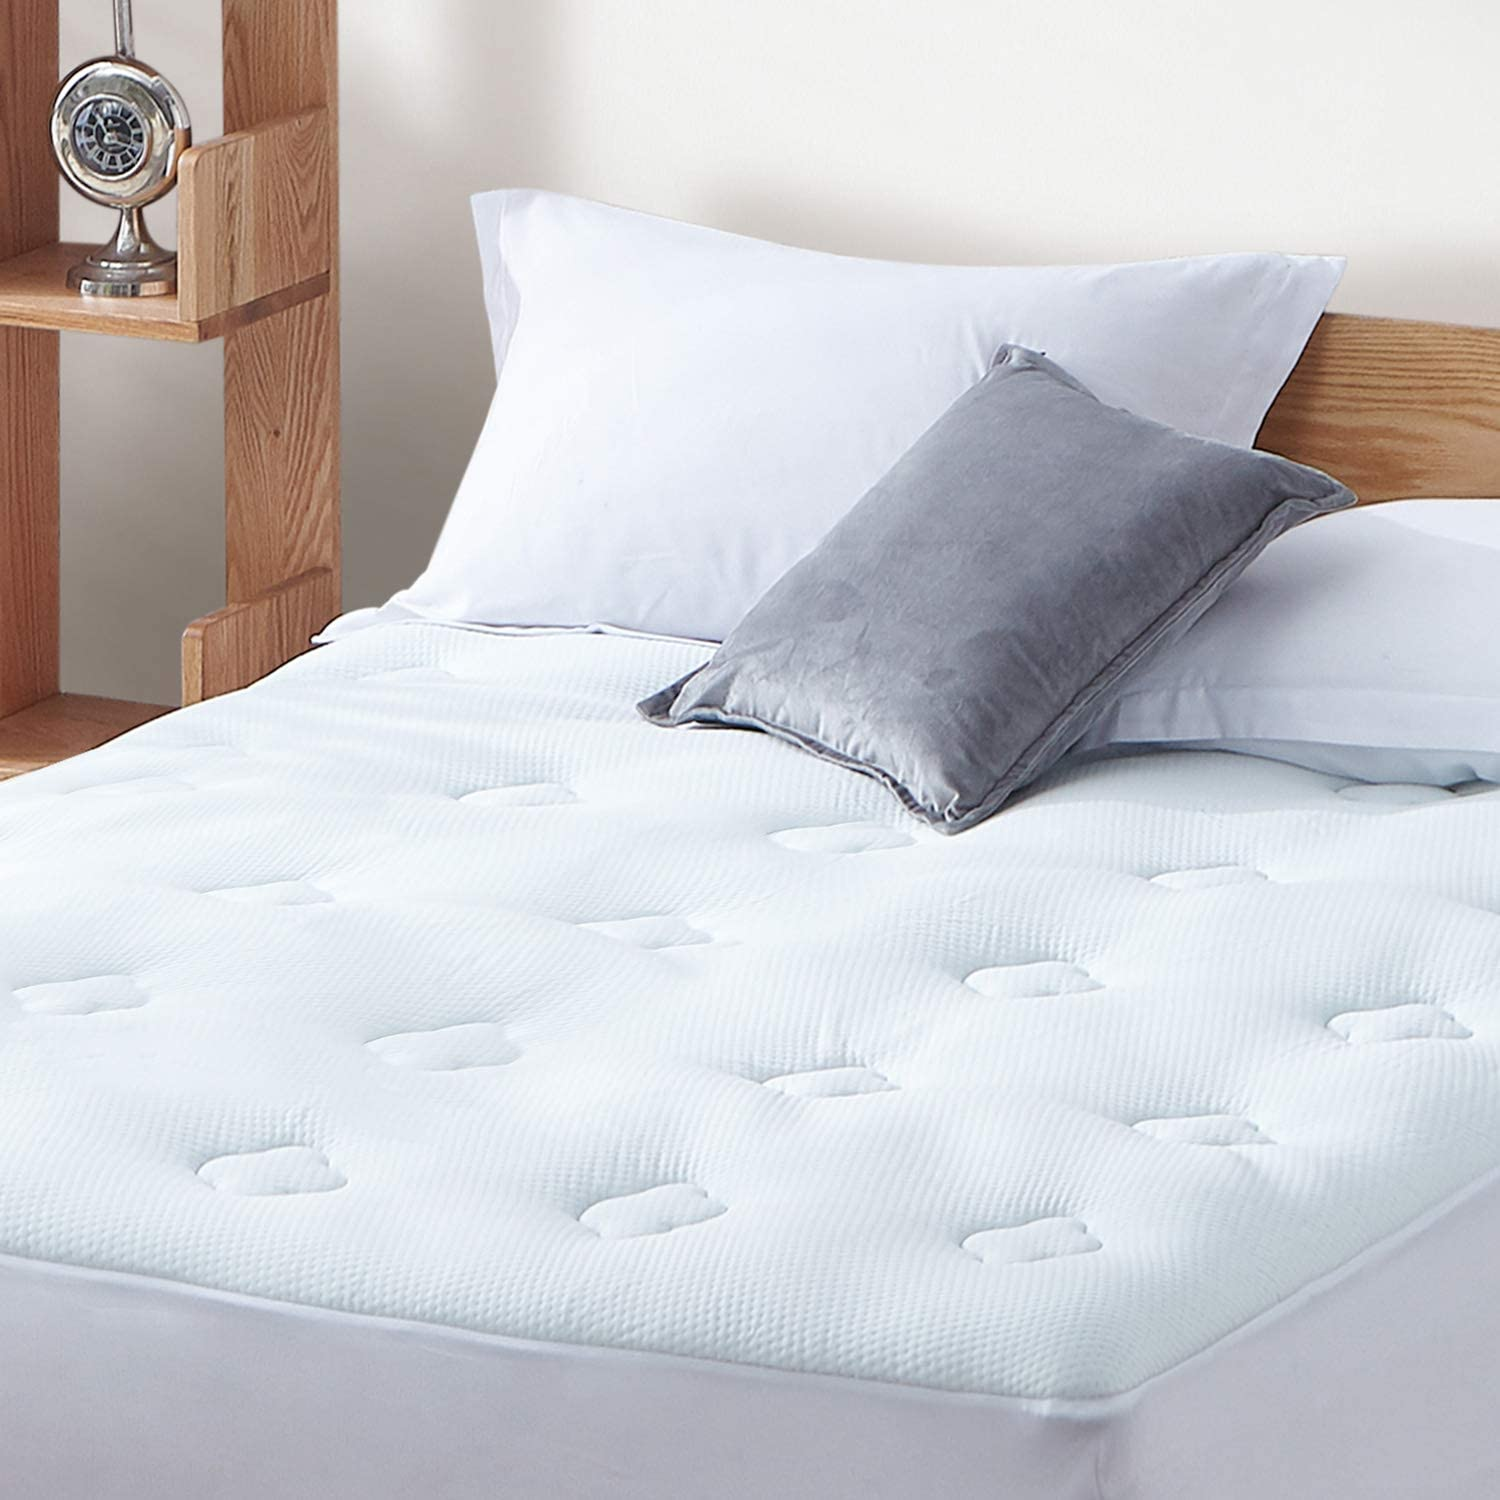 Hansleep Gel Memory Foam Mattress Pad King, Bamboo Mattress Pad Fluffy Mattress Protector with Deep Pocket, Breathable Cooling Air Mattress Topper Cover, 78x80 Inches